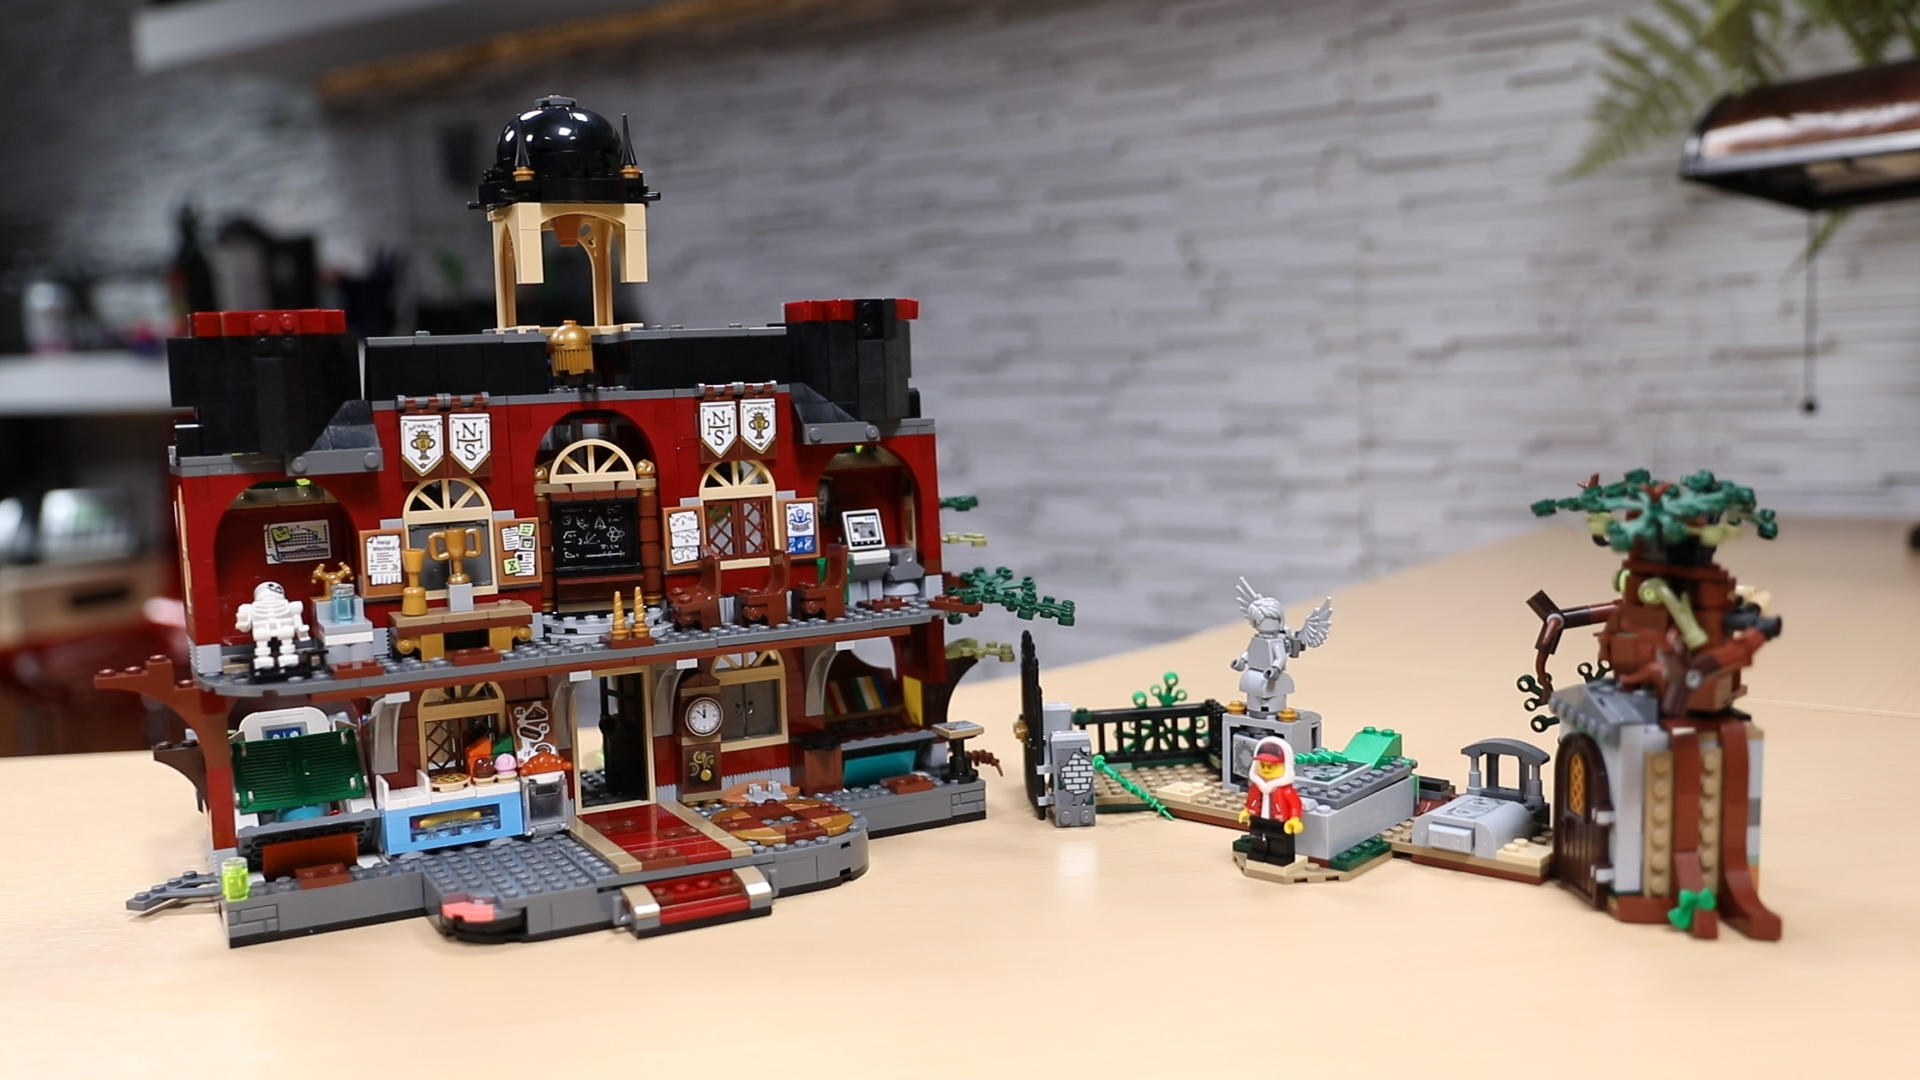 Video: Lego Hidden Side feels like an augmented reality haunted house